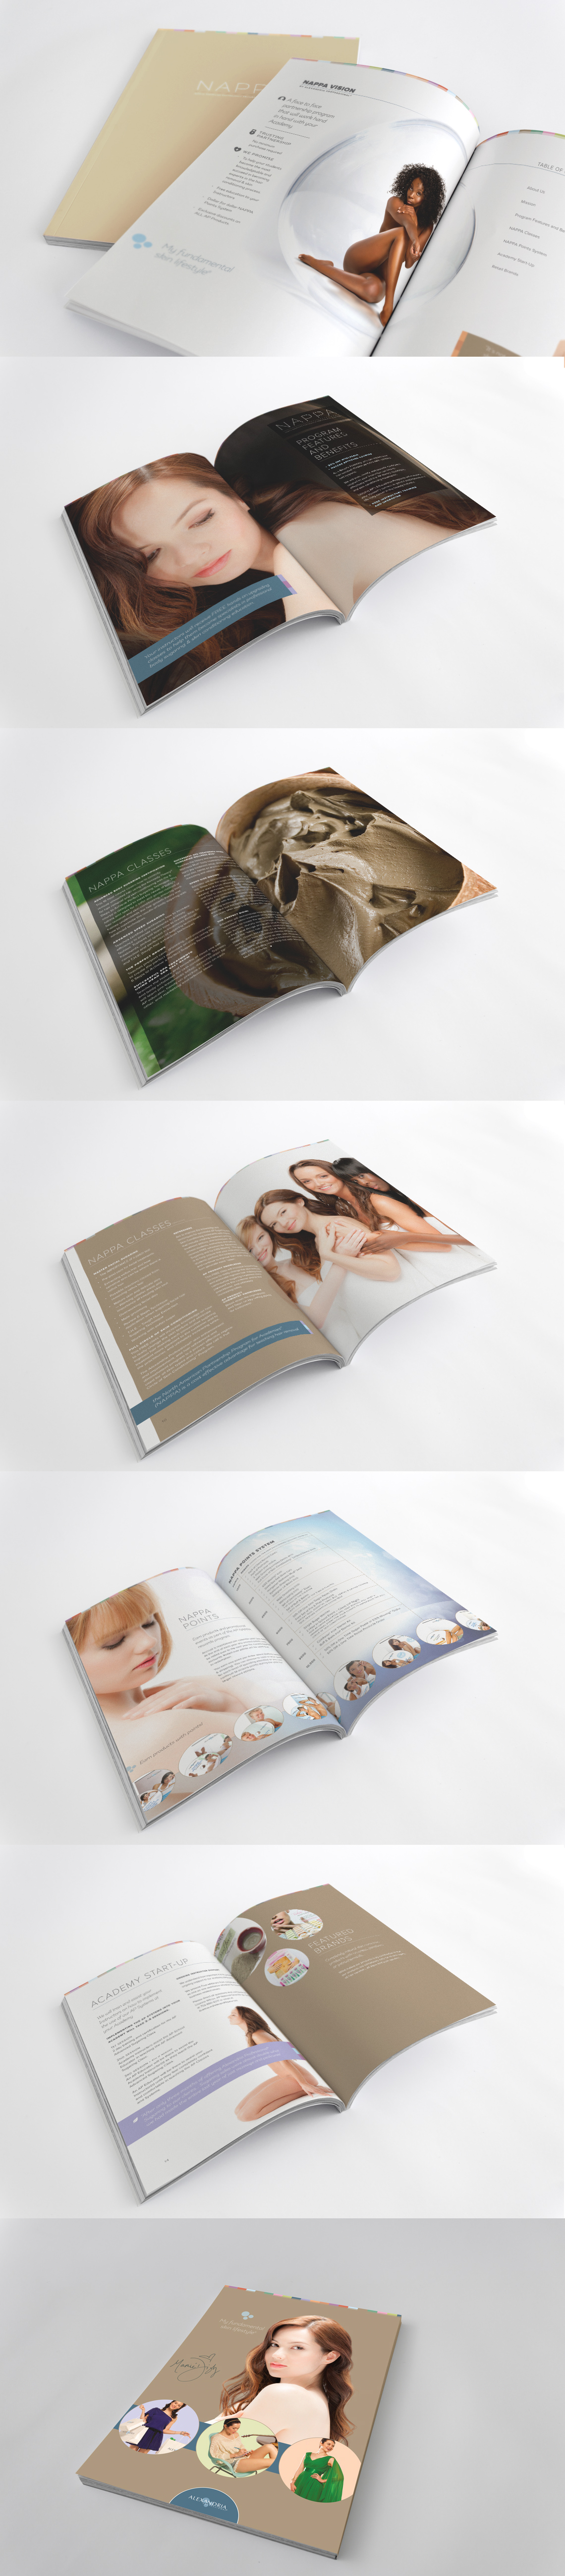 NAPPA brochure Design